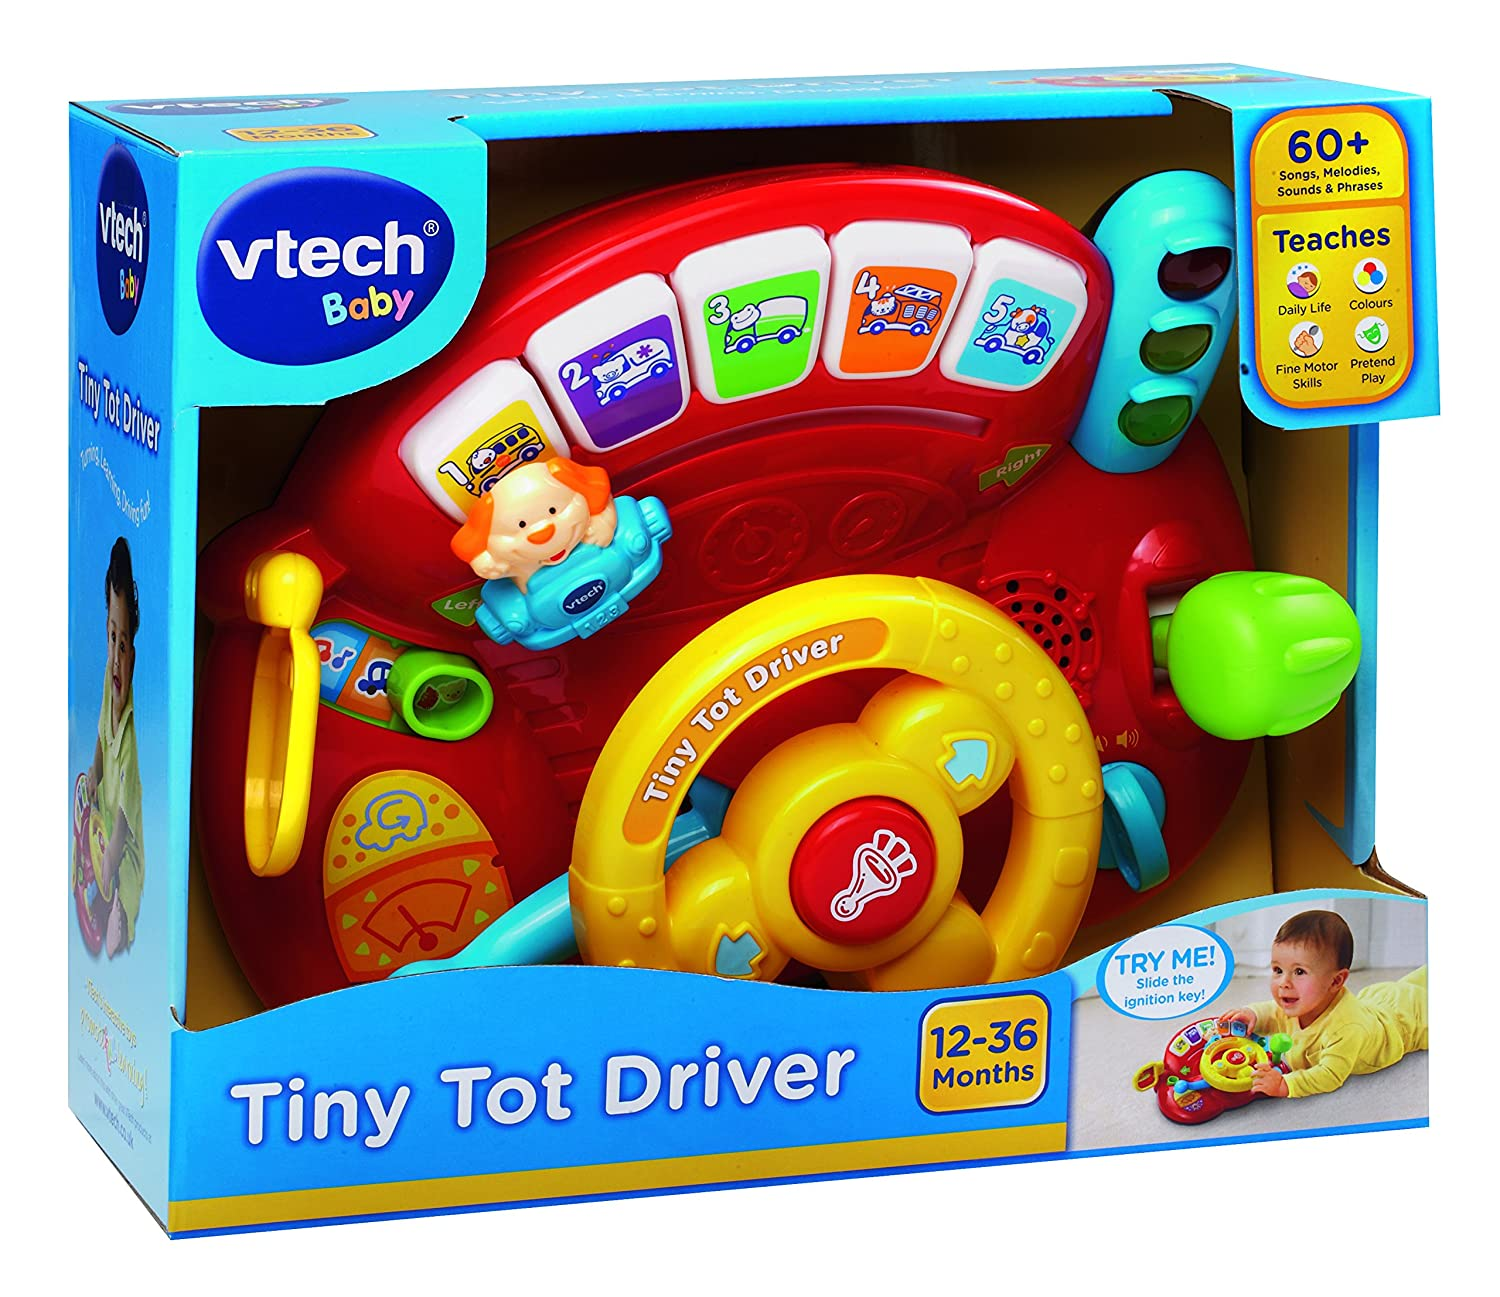 VTech Baby Tiny Tot Driver Multi Coloured Amazon Toys